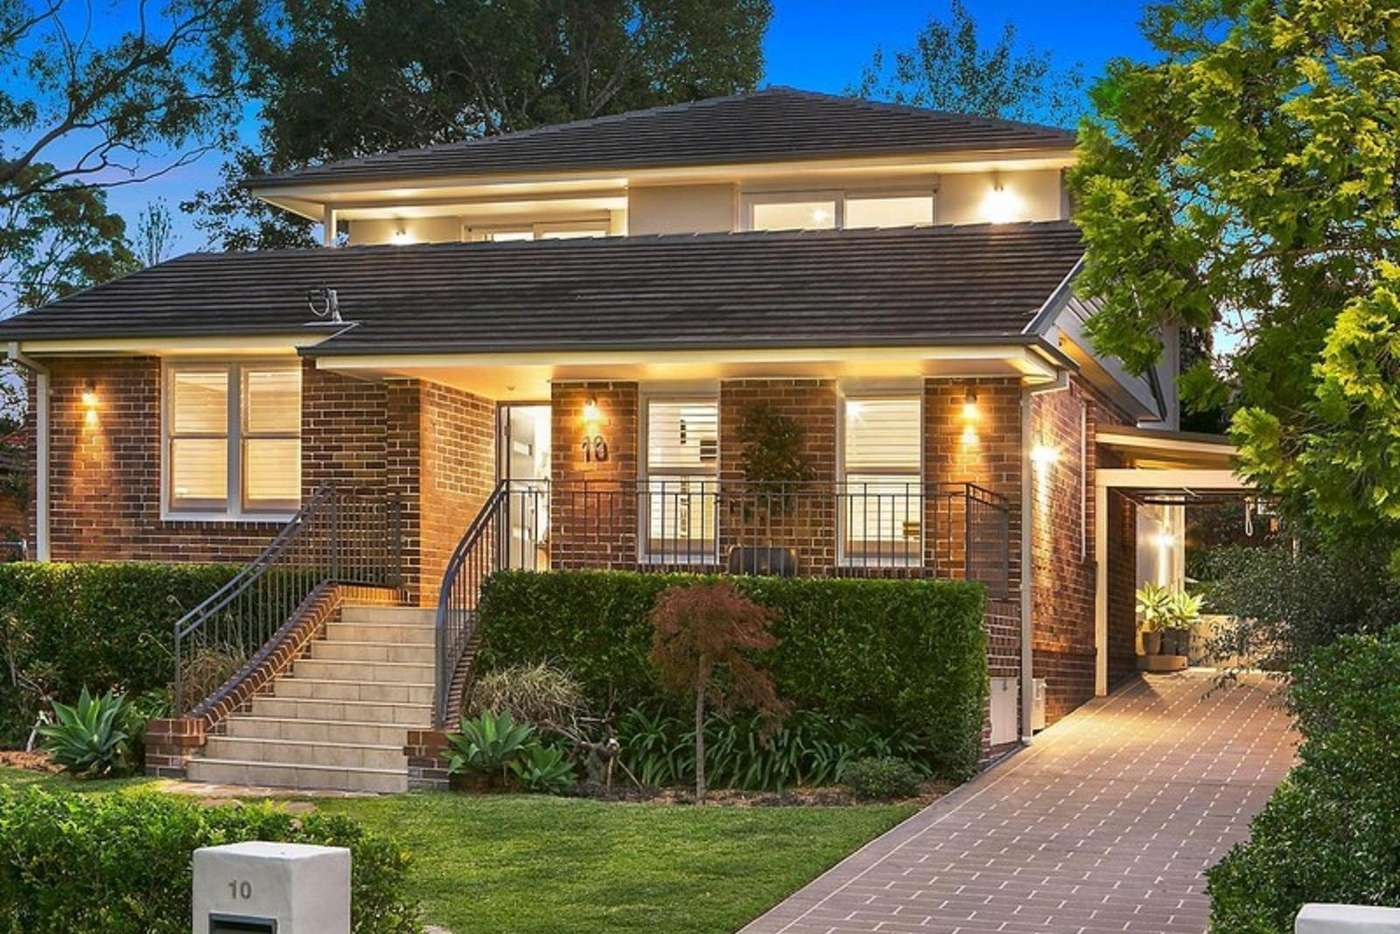 Main view of Homely house listing, 10 Windeyer Avenue, Gladesville NSW 2111